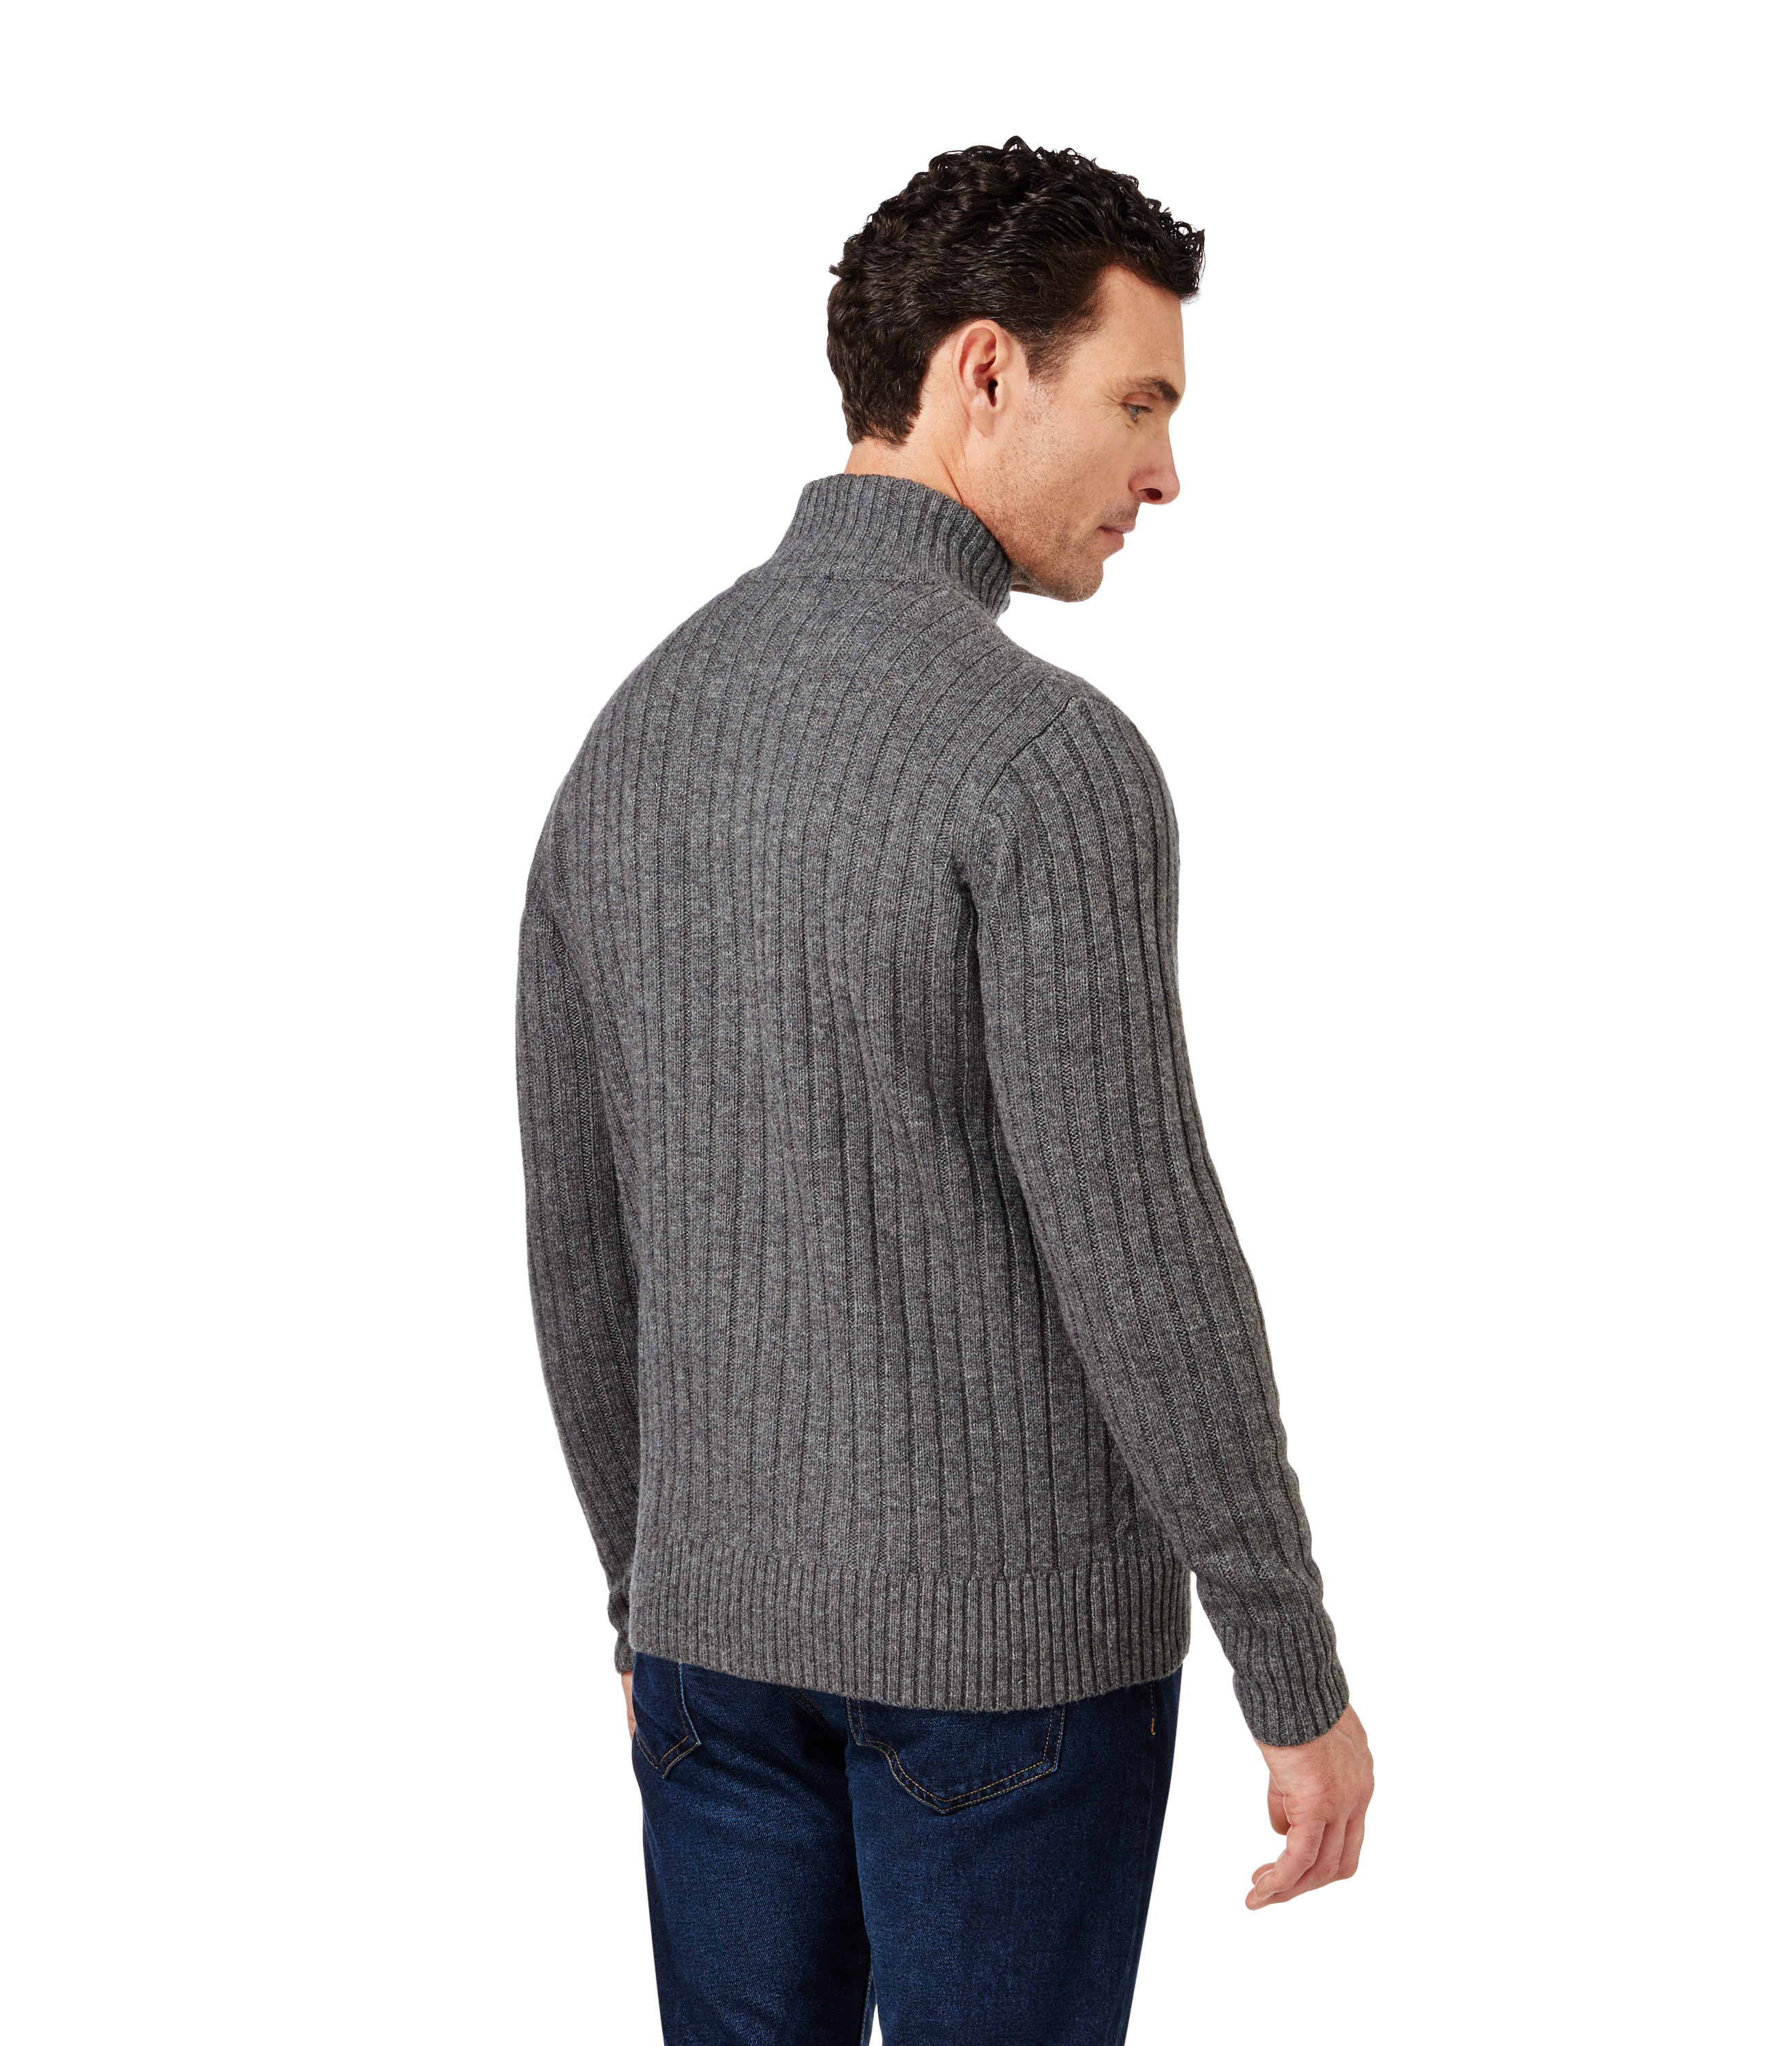 Mens Cable Knit Cardigan Fresh Mid Grey Marl Pure Lambswool Of New 45 Models Mens Cable Knit Cardigan